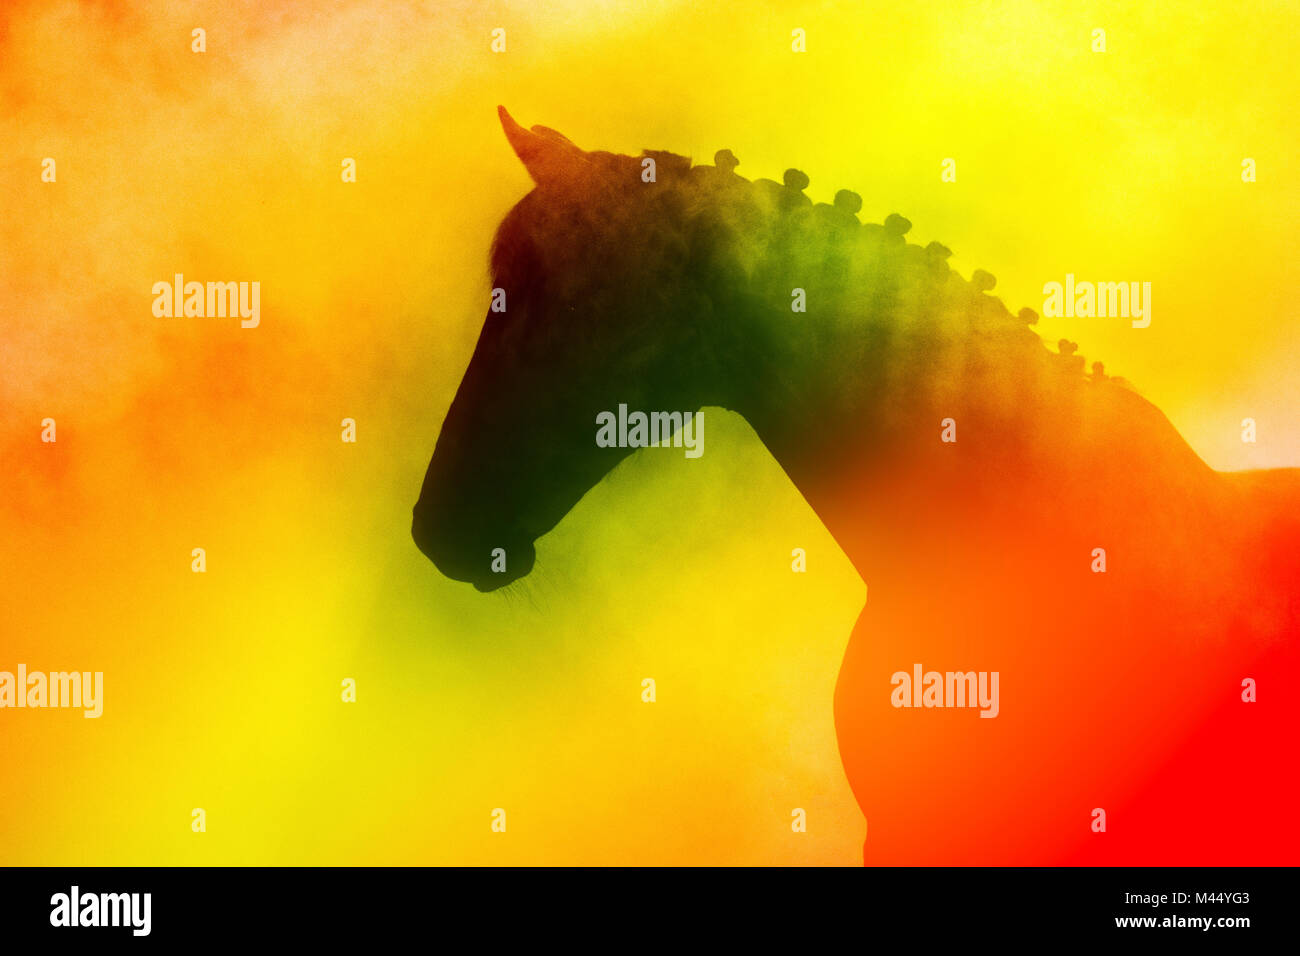 Warmblood horse with special lightning effects using a smoke machine and stage lightning. Netherlands - Stock Image